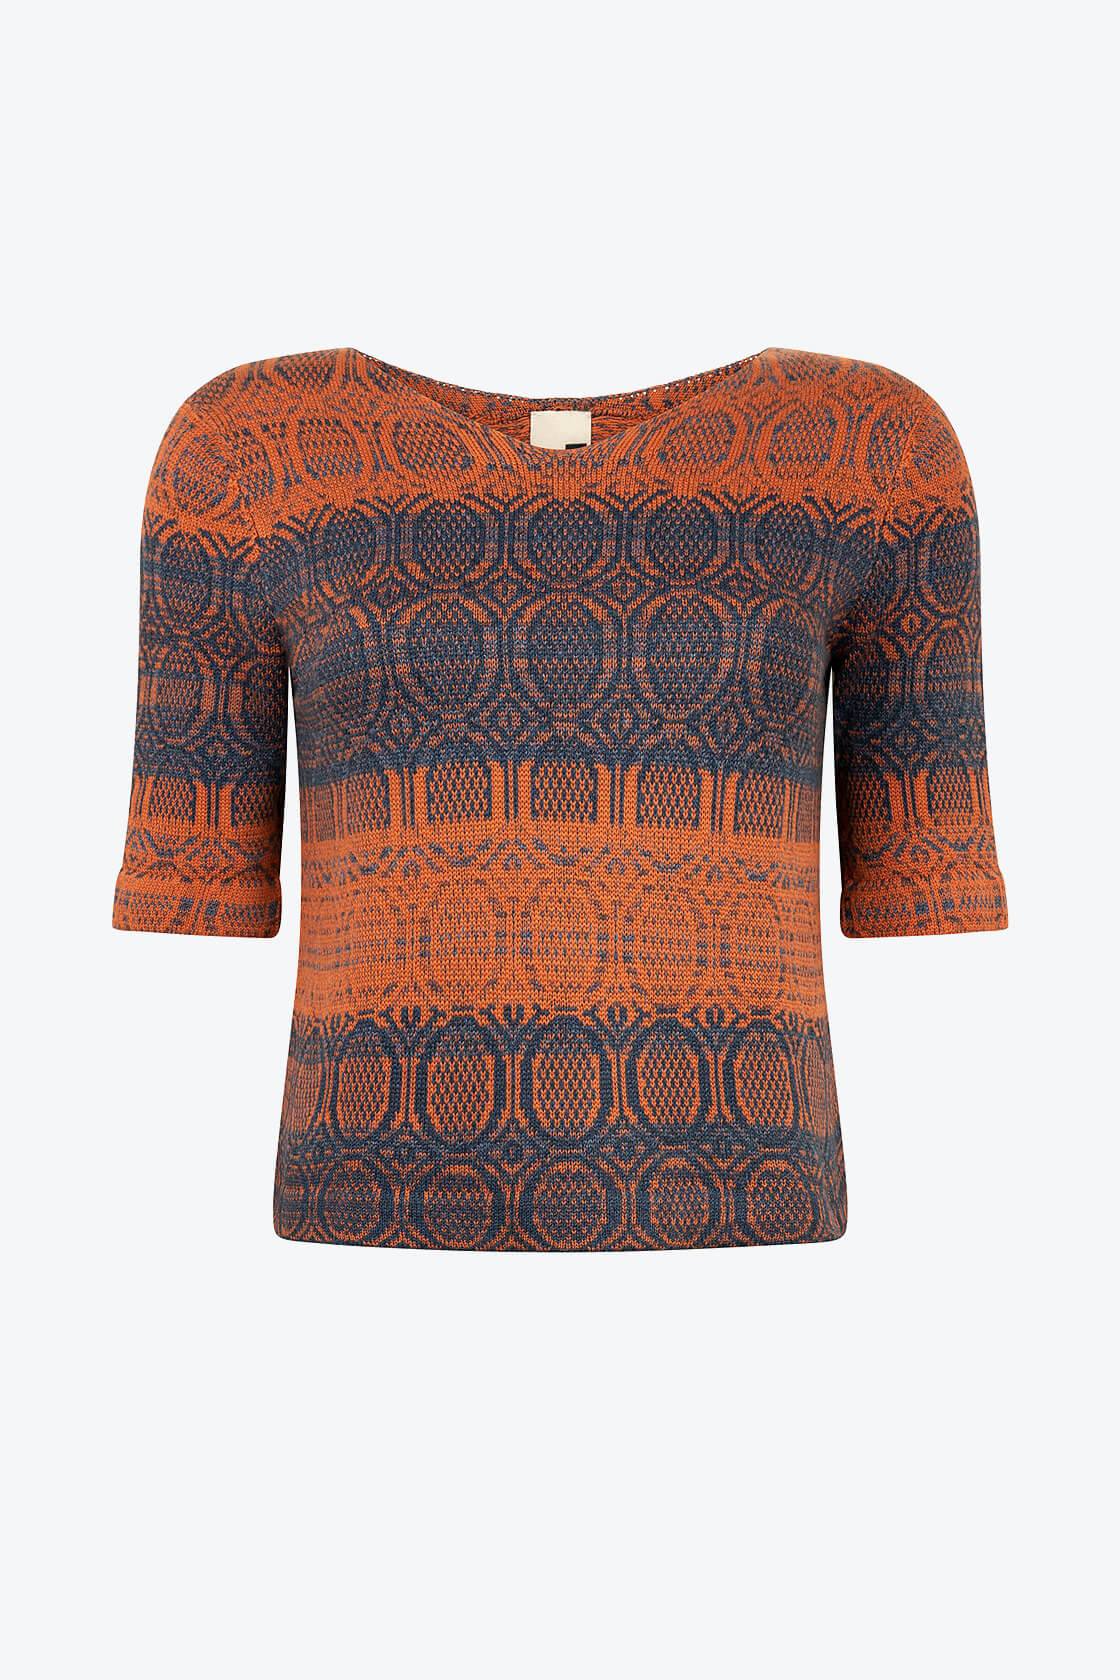 Knitted Cotton Jumper With V Neck And 3 4 Sleeves Denim Red Copper With Indigo Blue